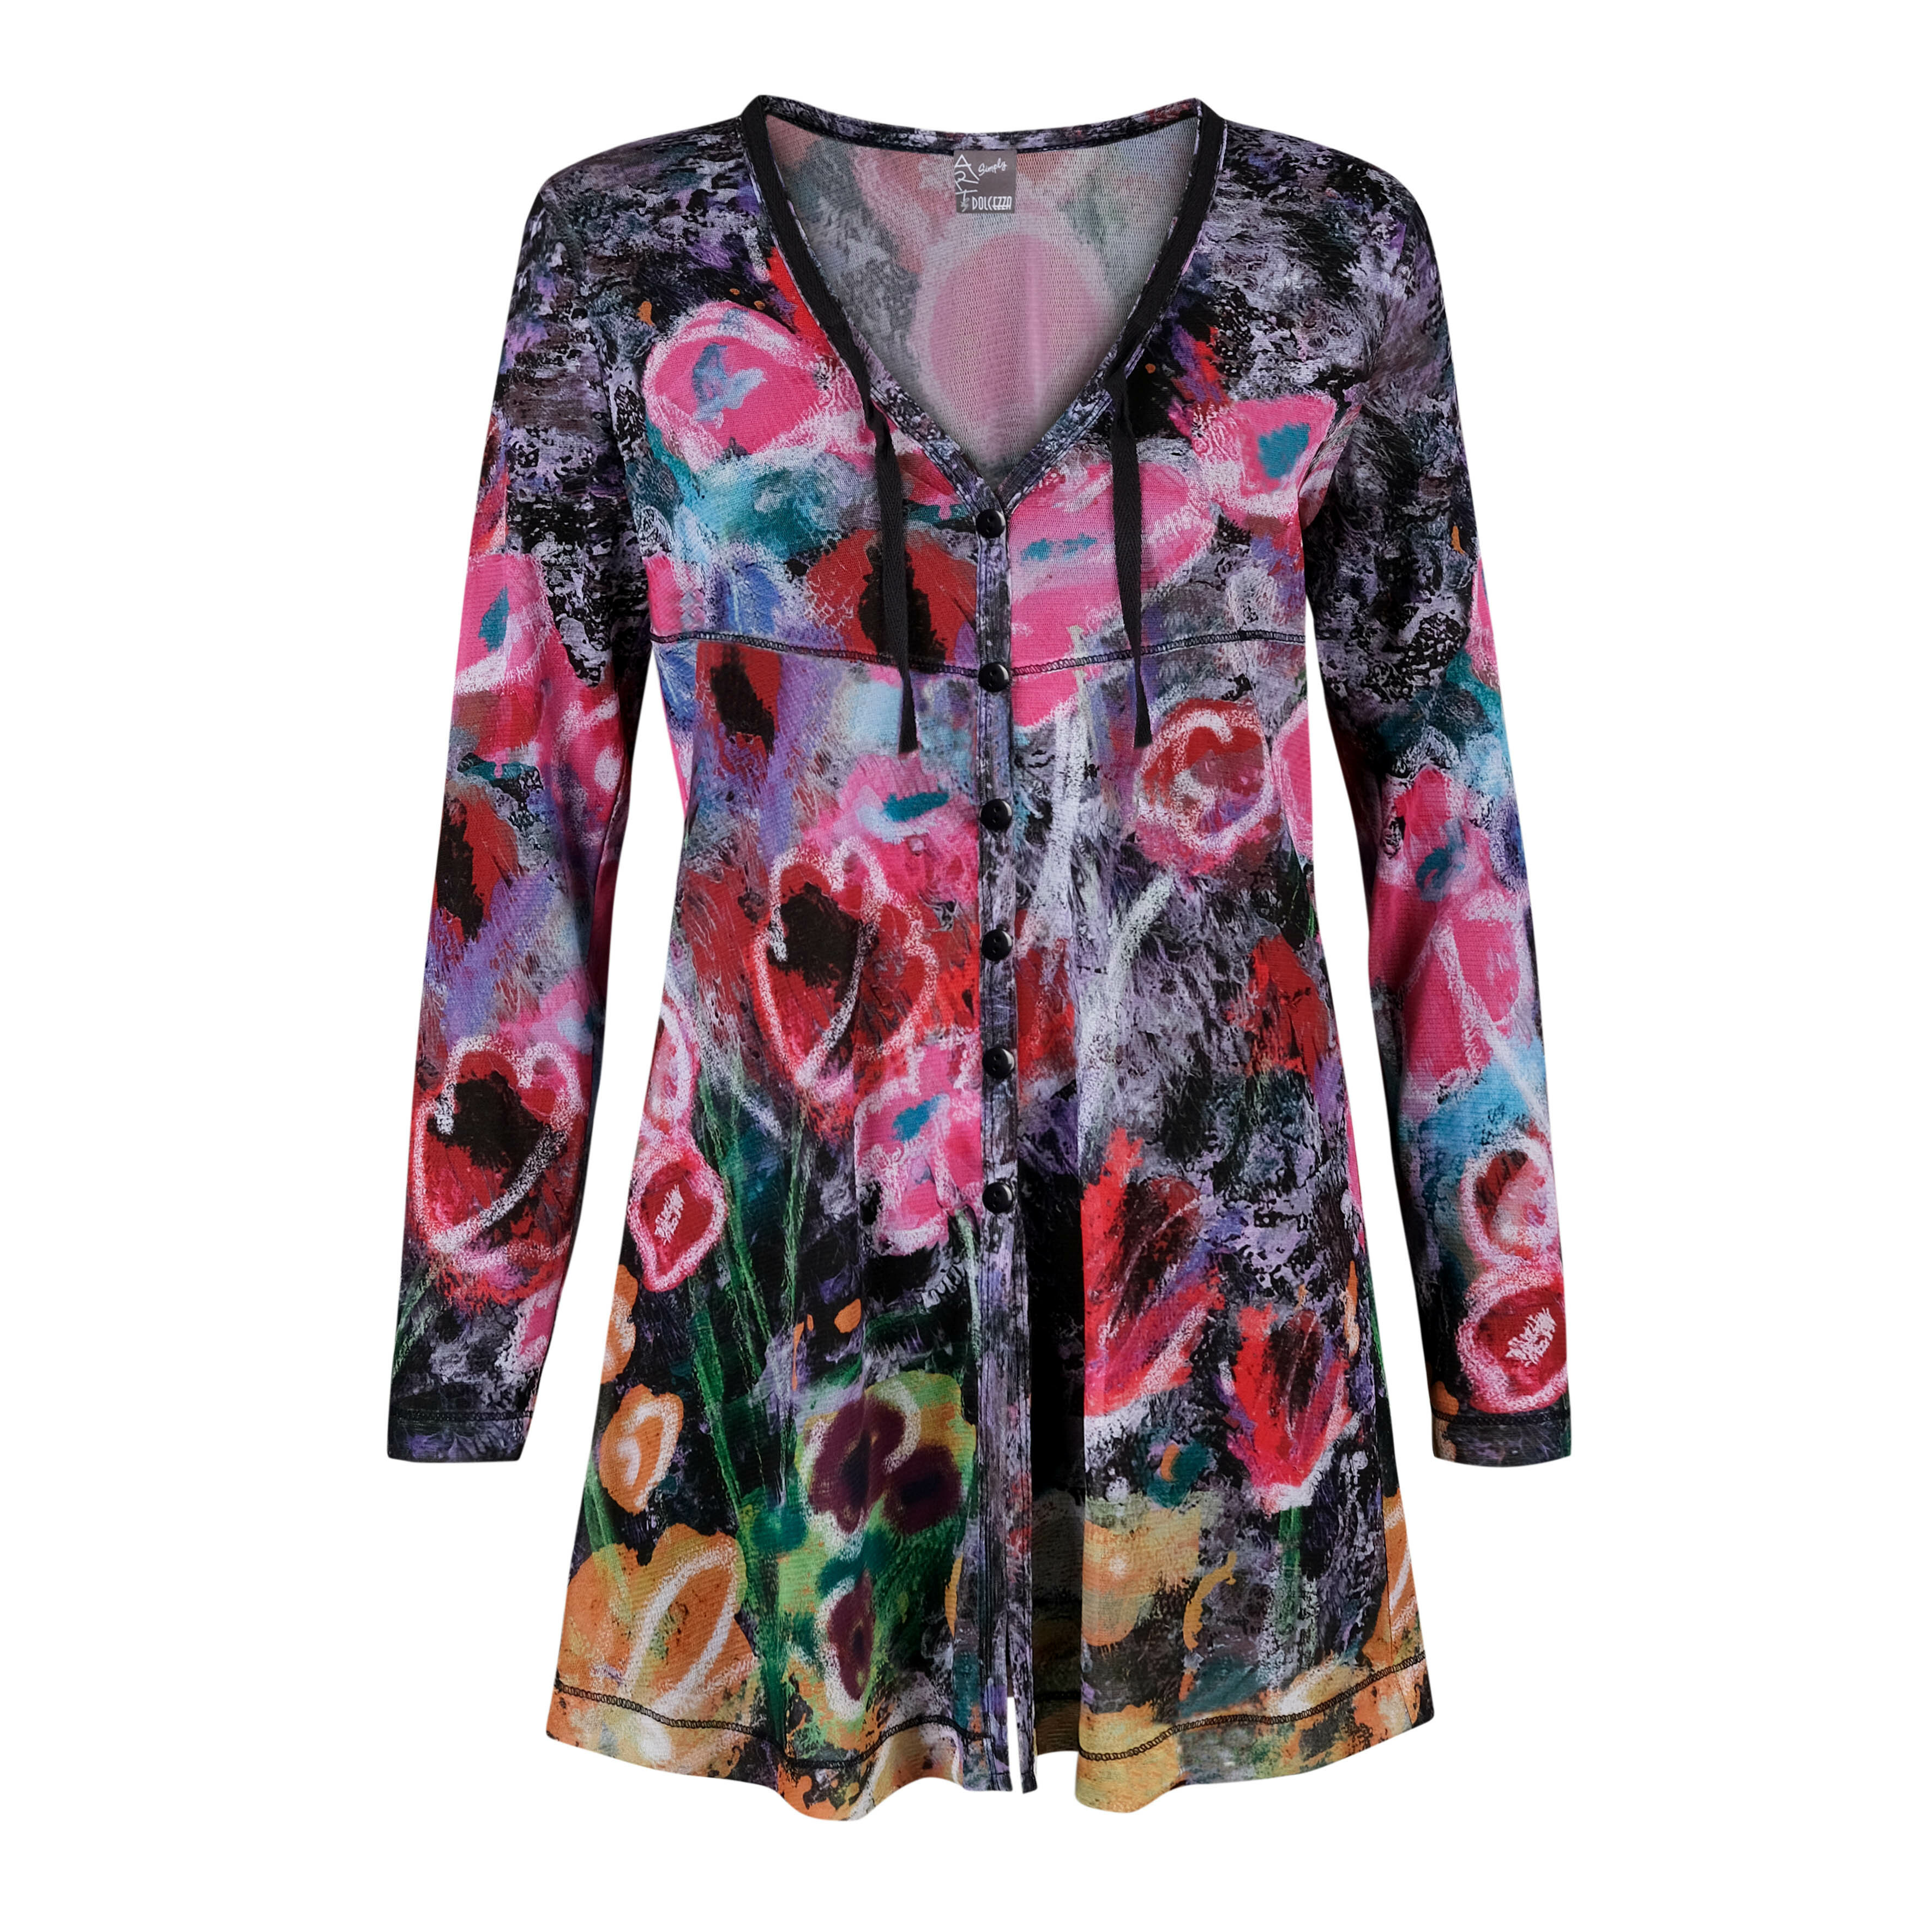 Simply Art Dolcezza: Wildest Flowers Abstract Art Tunic Cardigan (1 Left!) Dolcezza_SimplyArt_20604